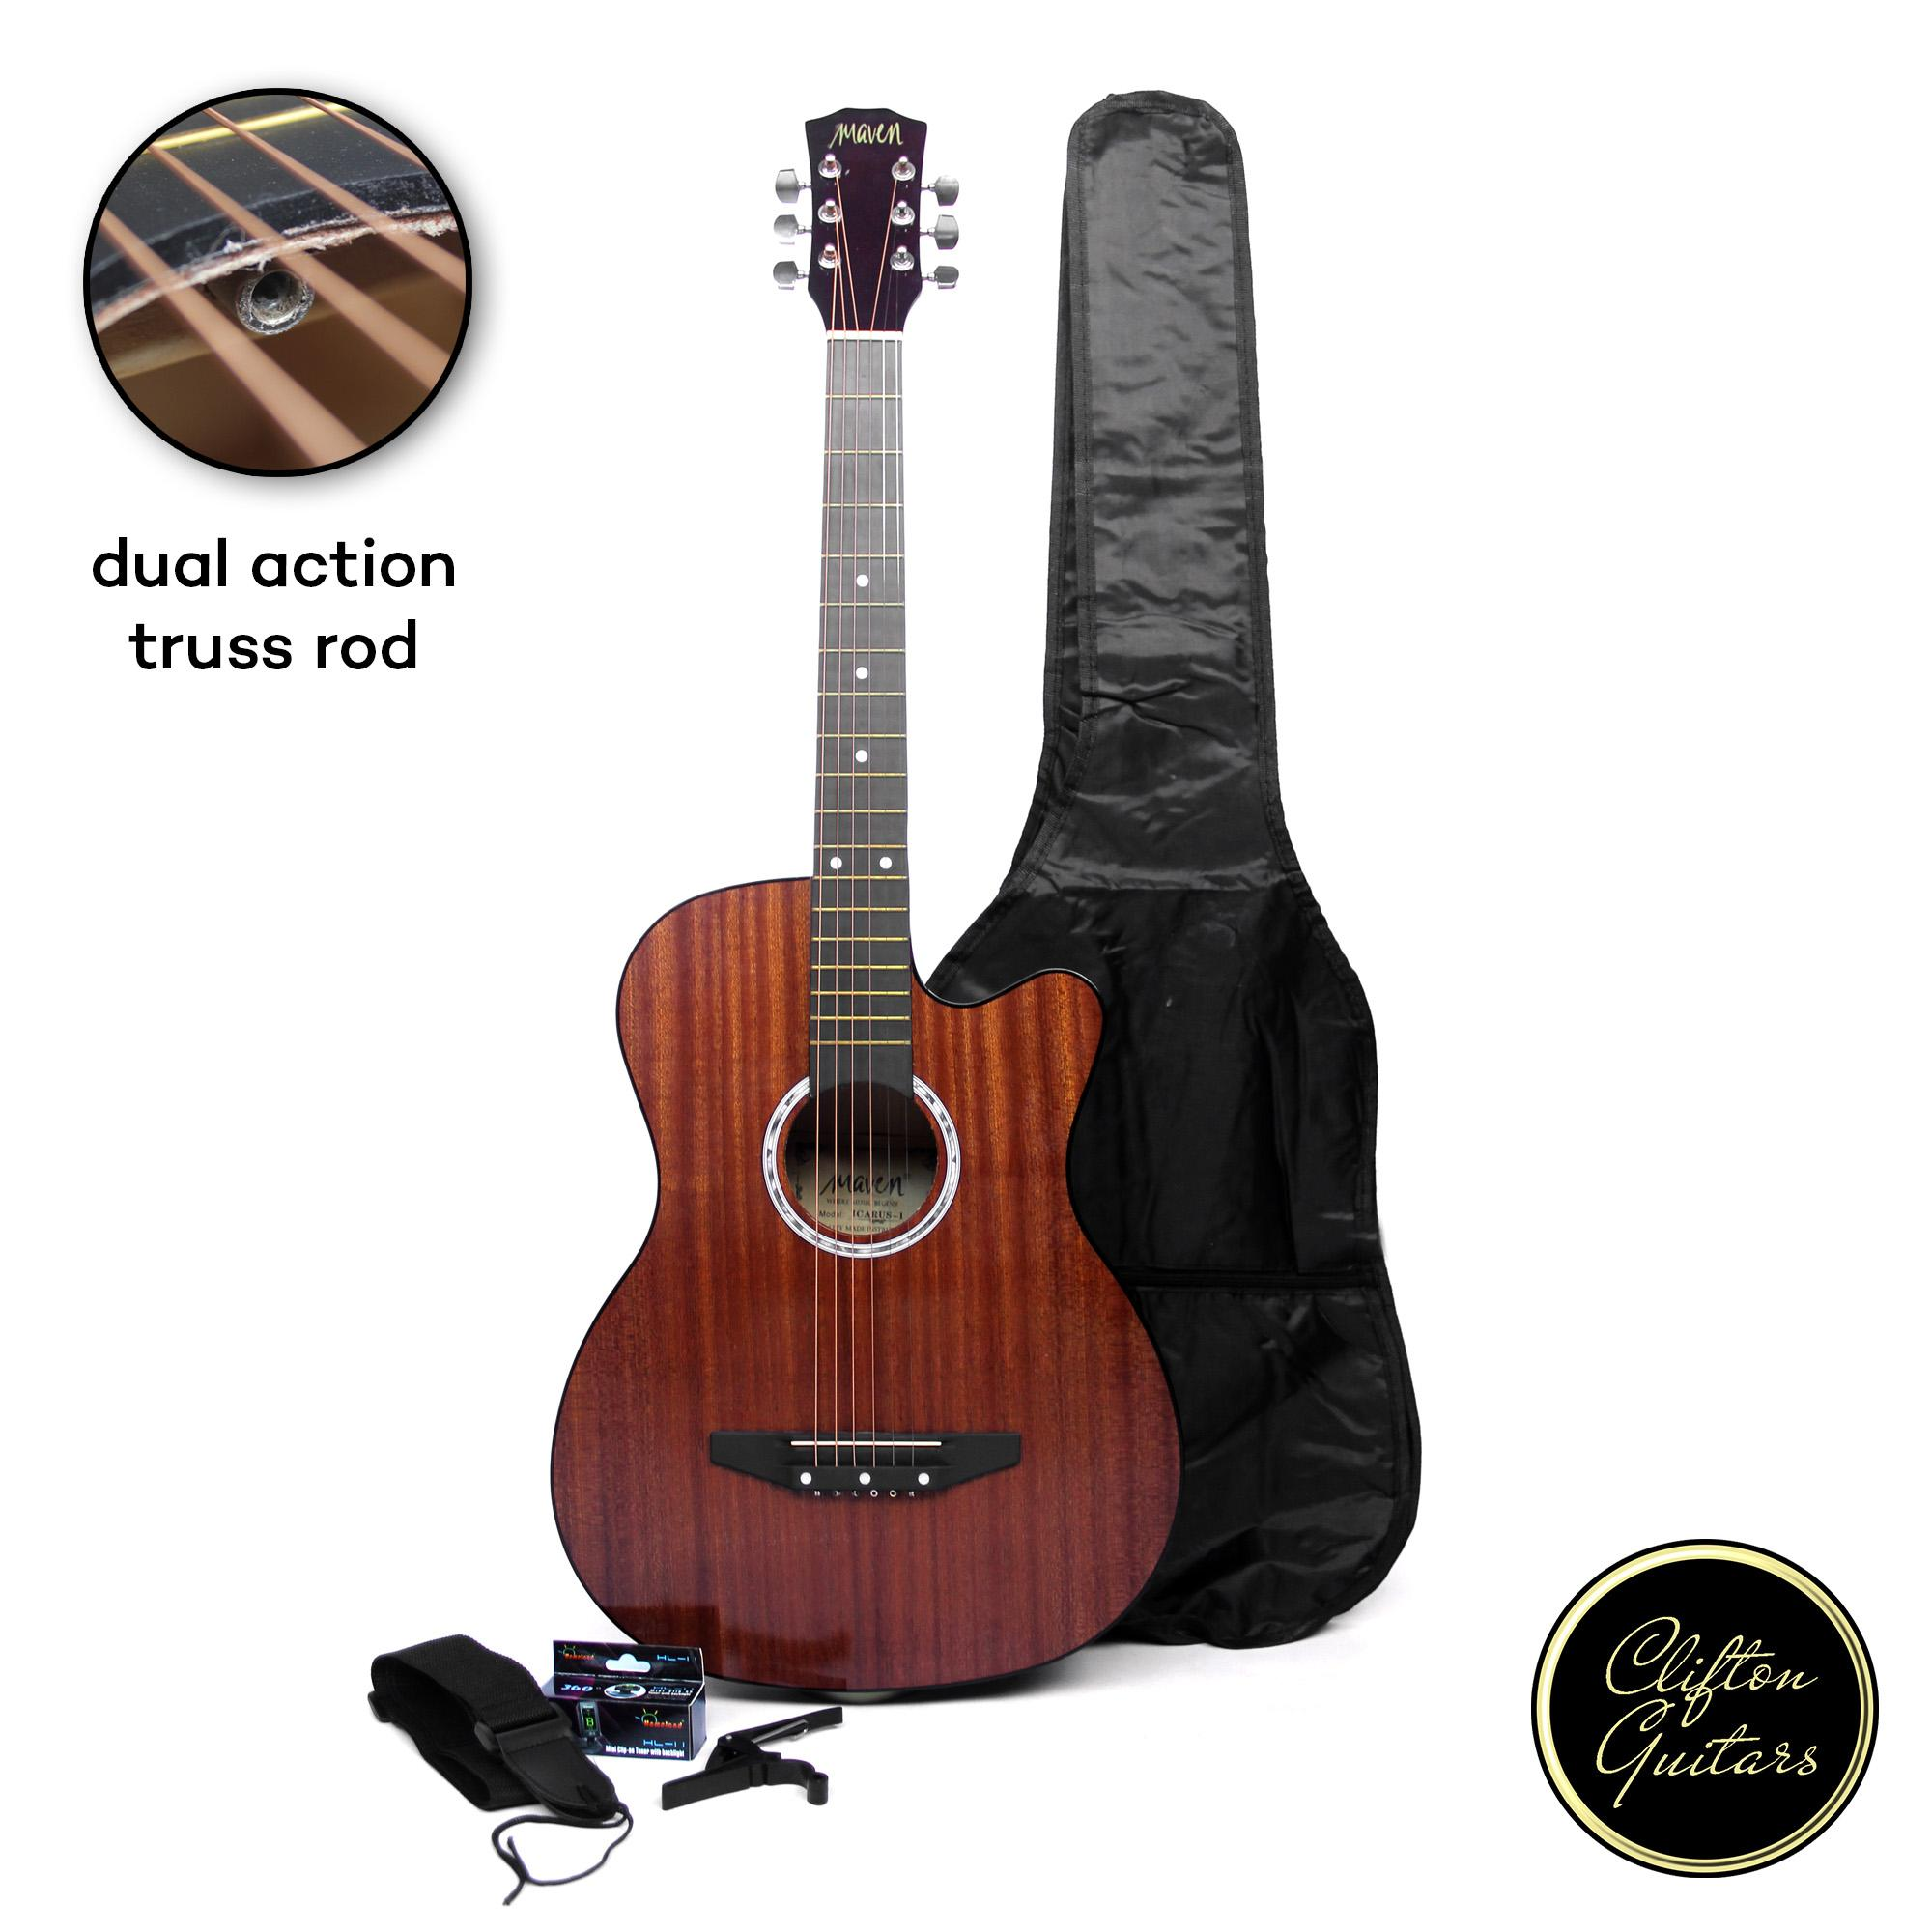 Acoustic Guitar For Sale Hollow Guitar Best Seller Prices